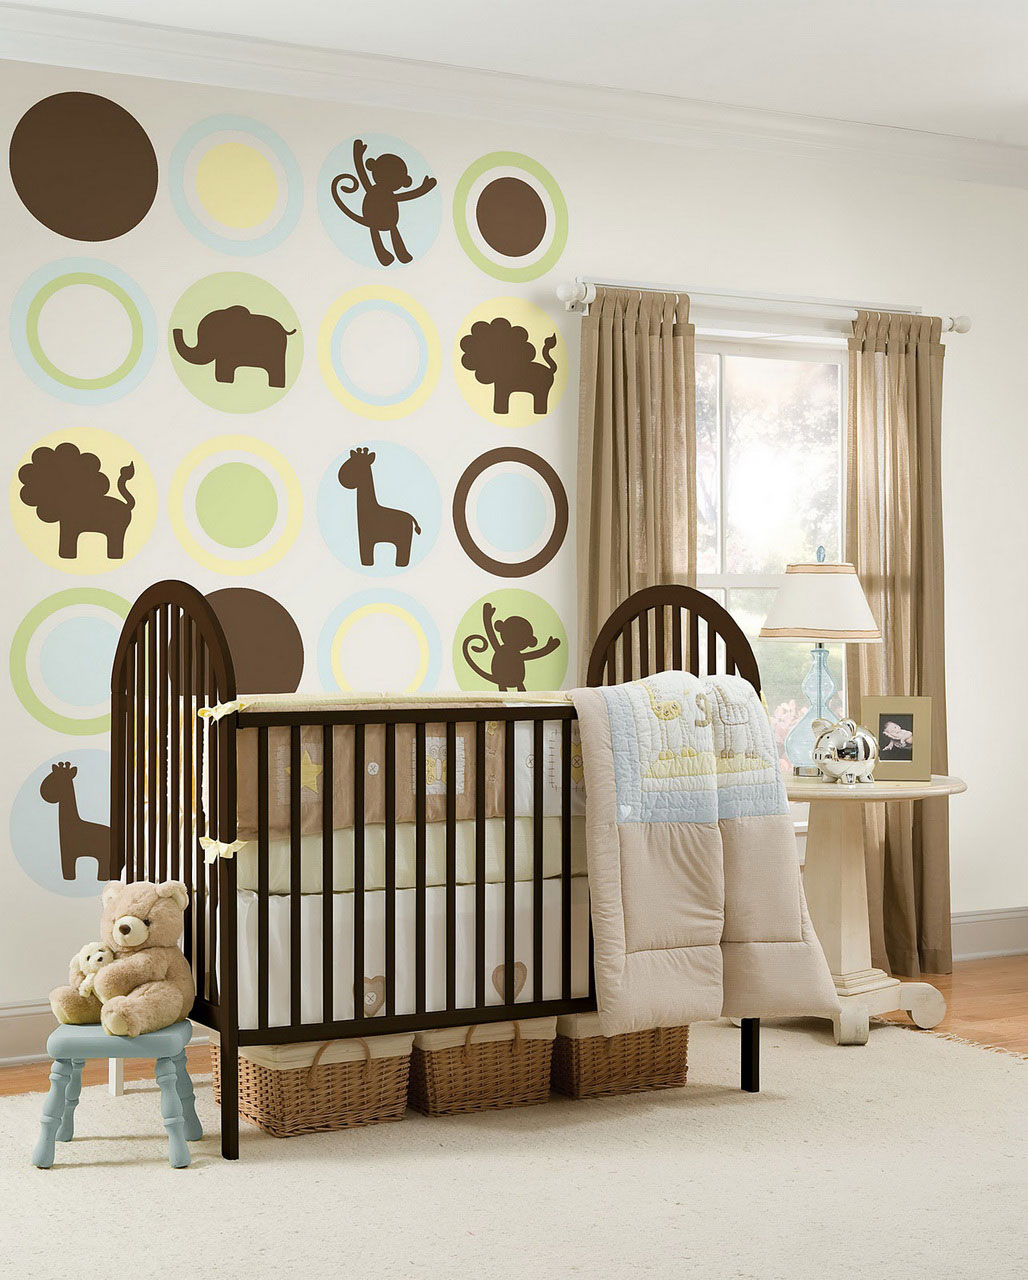 Dream Nursery for Your Baby | My Decorative